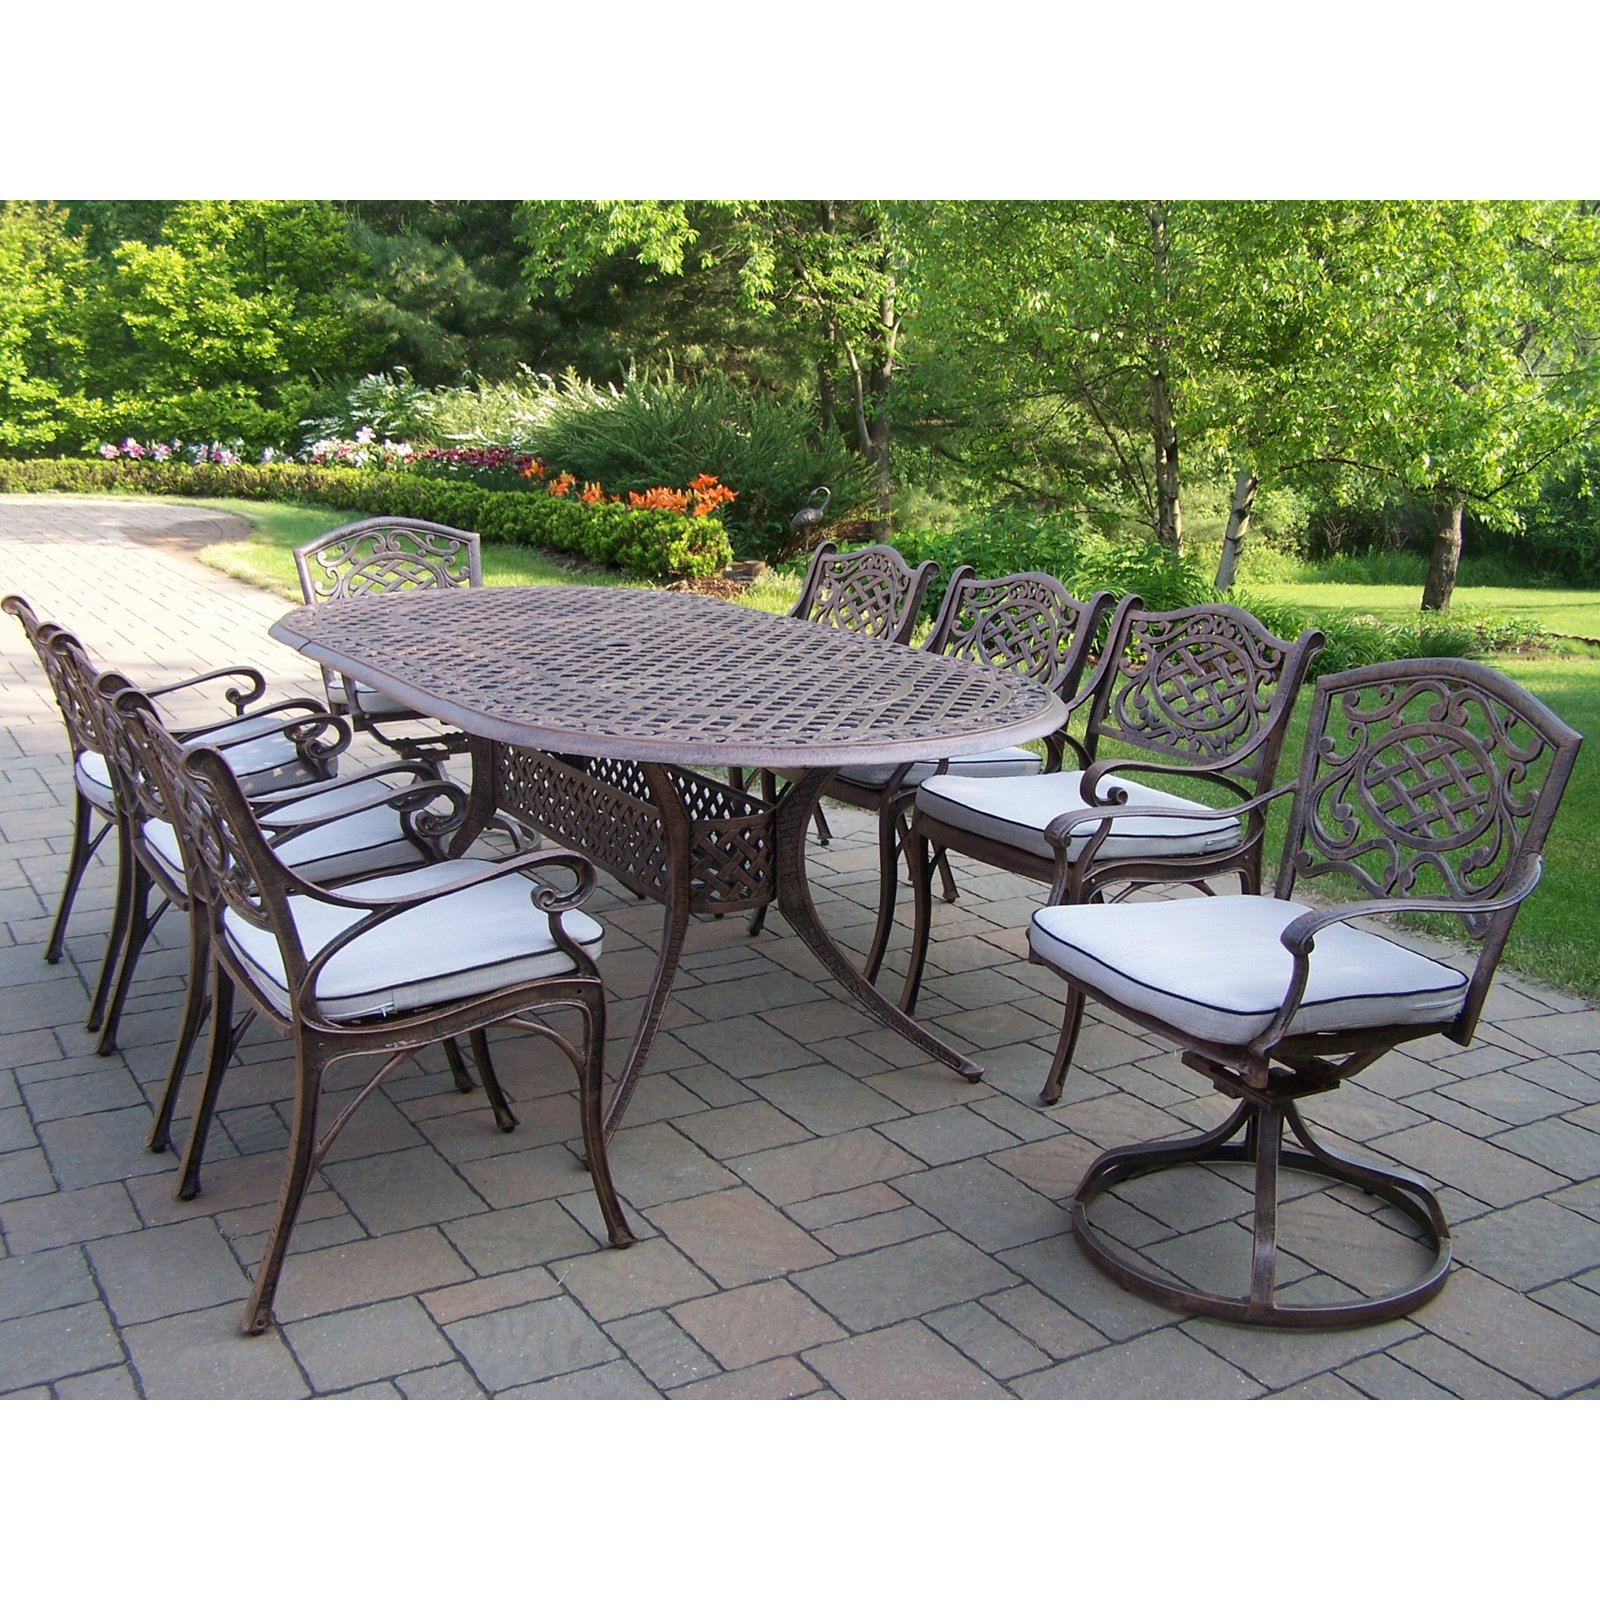 Oakland Living Mississippi Cast Aluminum 82 x 42 in. Oval Patio Dining Set with Swivel Chairs - Seats 8